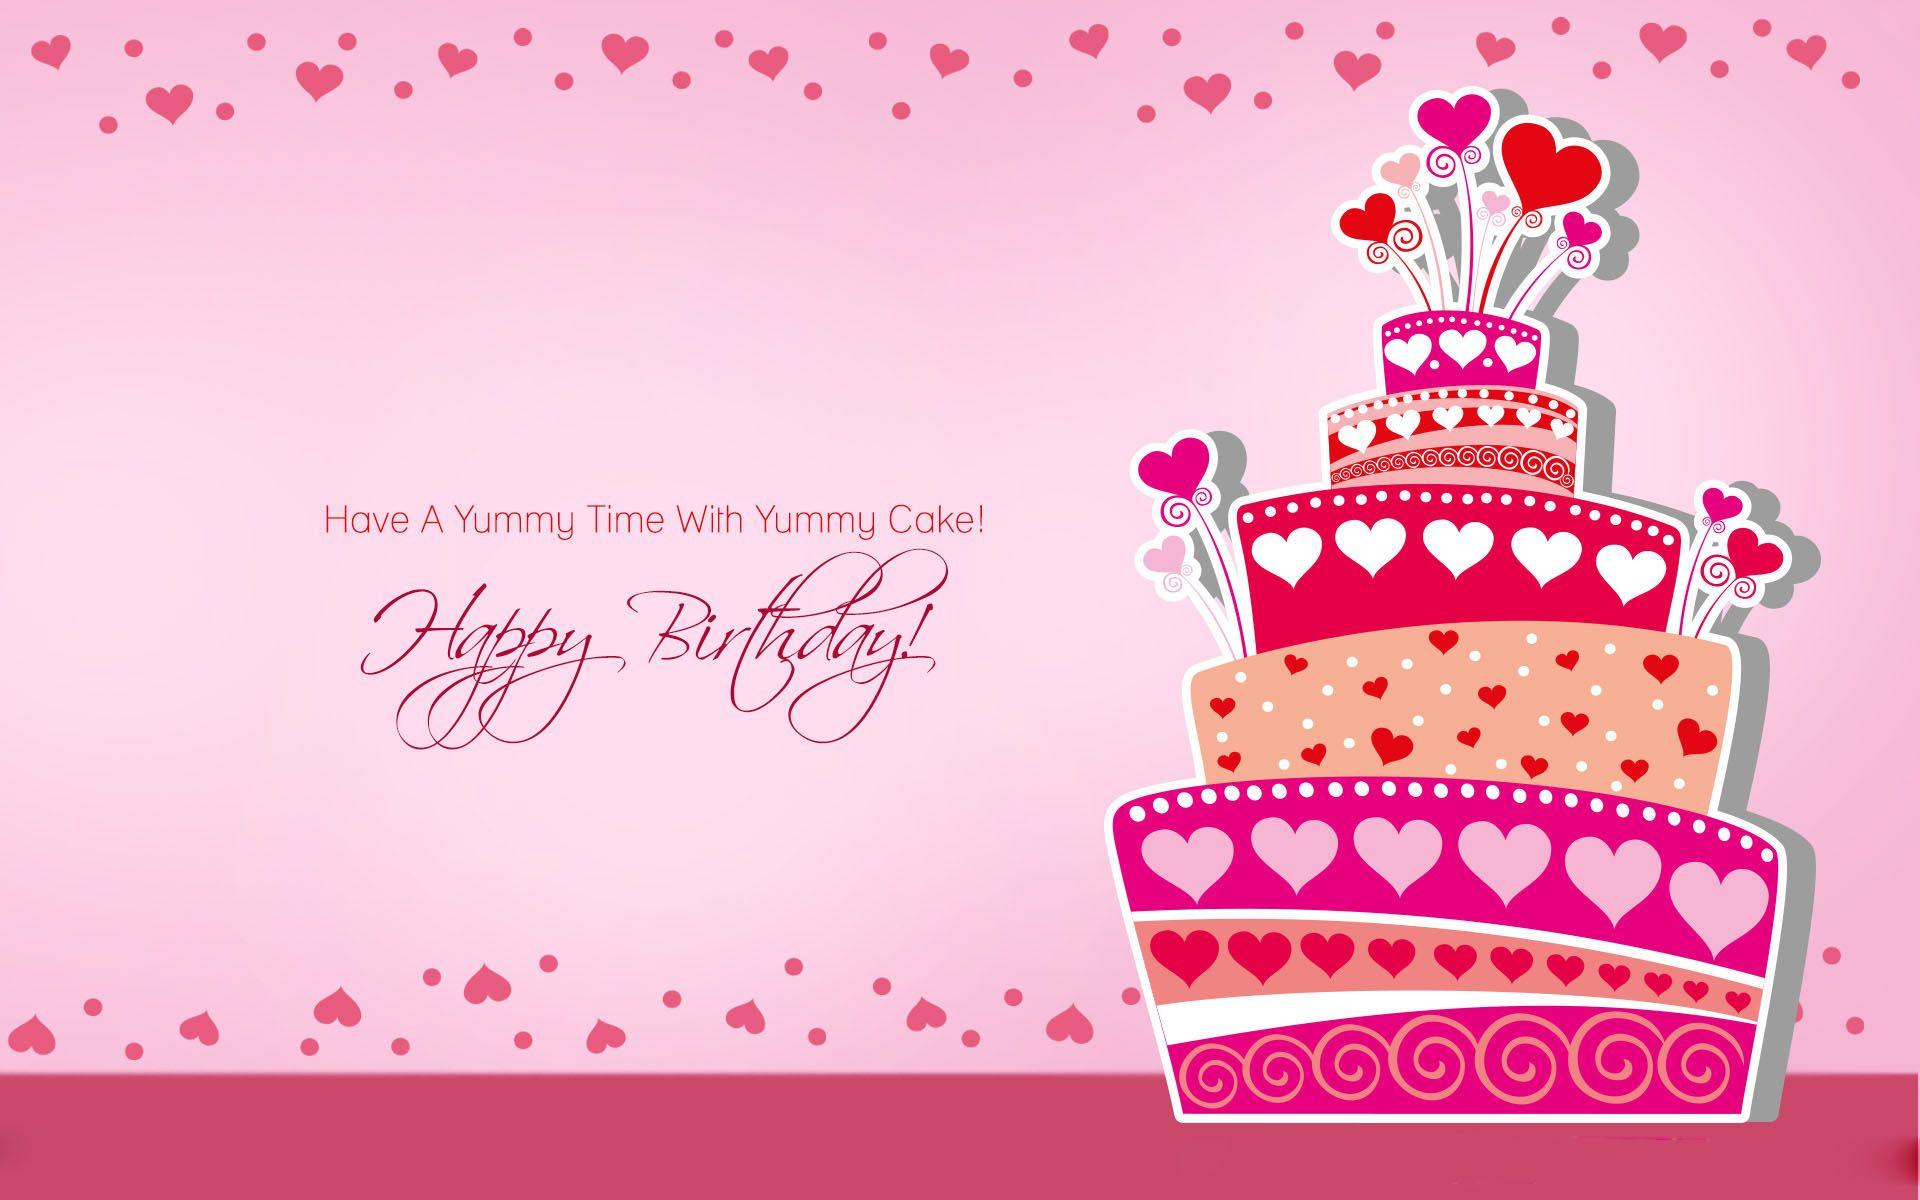 Happy Birthday HD Wallpapers Image Wallpapers computer